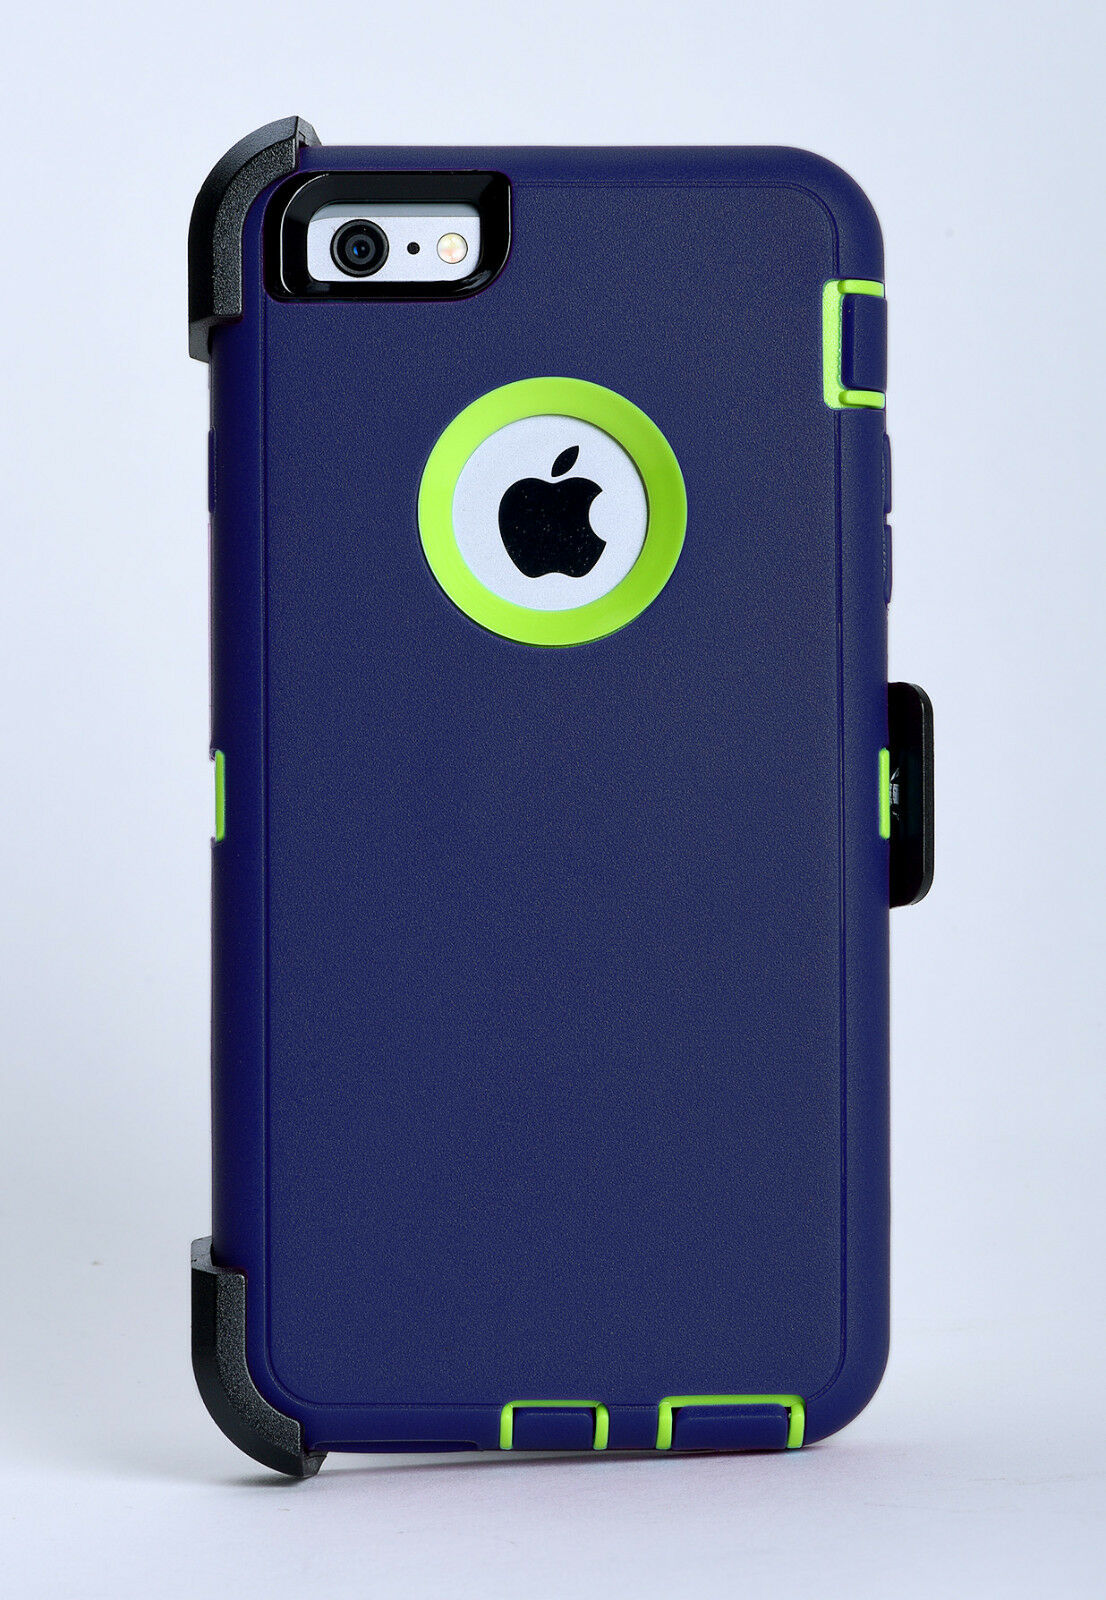 competitive price b64a1 4066f Details about iPhone 6 Plus & iPhone 6s Plus Defender Case w/Holster Belt  Clip Blue/Lime Green